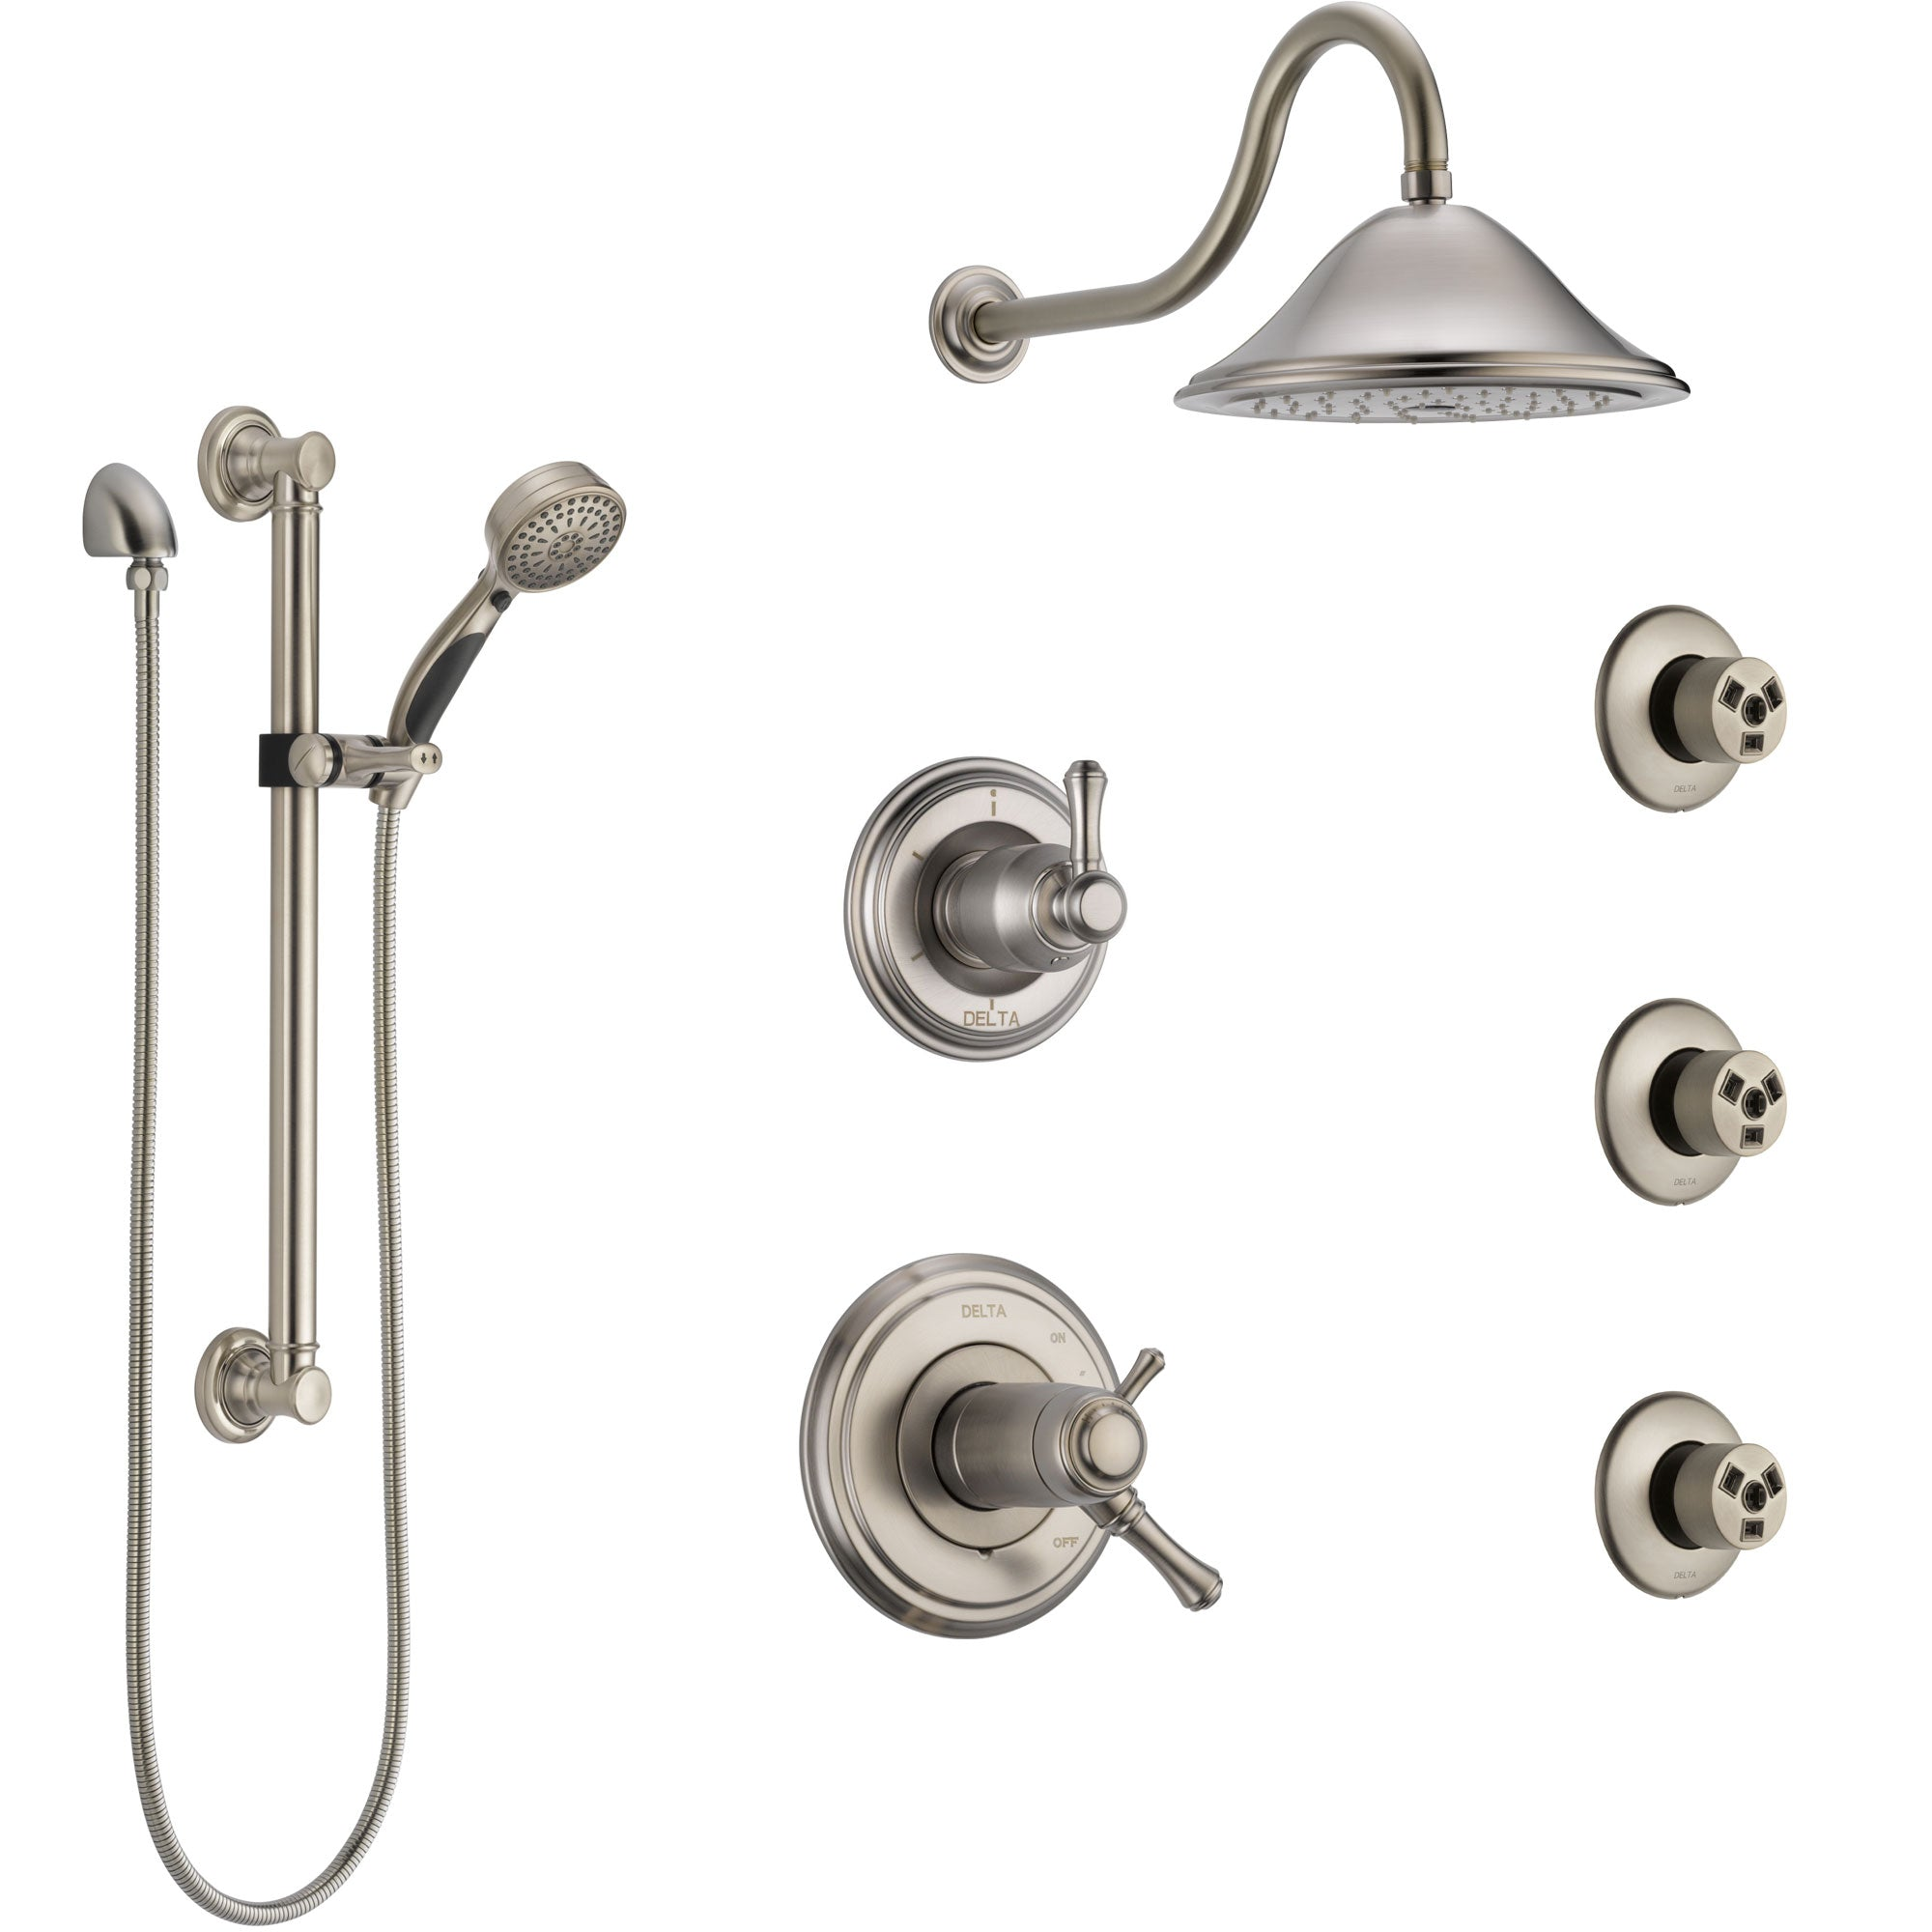 Delta Cassidy Dual Thermostatic Control Stainless Steel Finish Shower System, Diverter, Showerhead, 3 Body Sprays, Grab Bar Hand Spray SS17T2971SS1